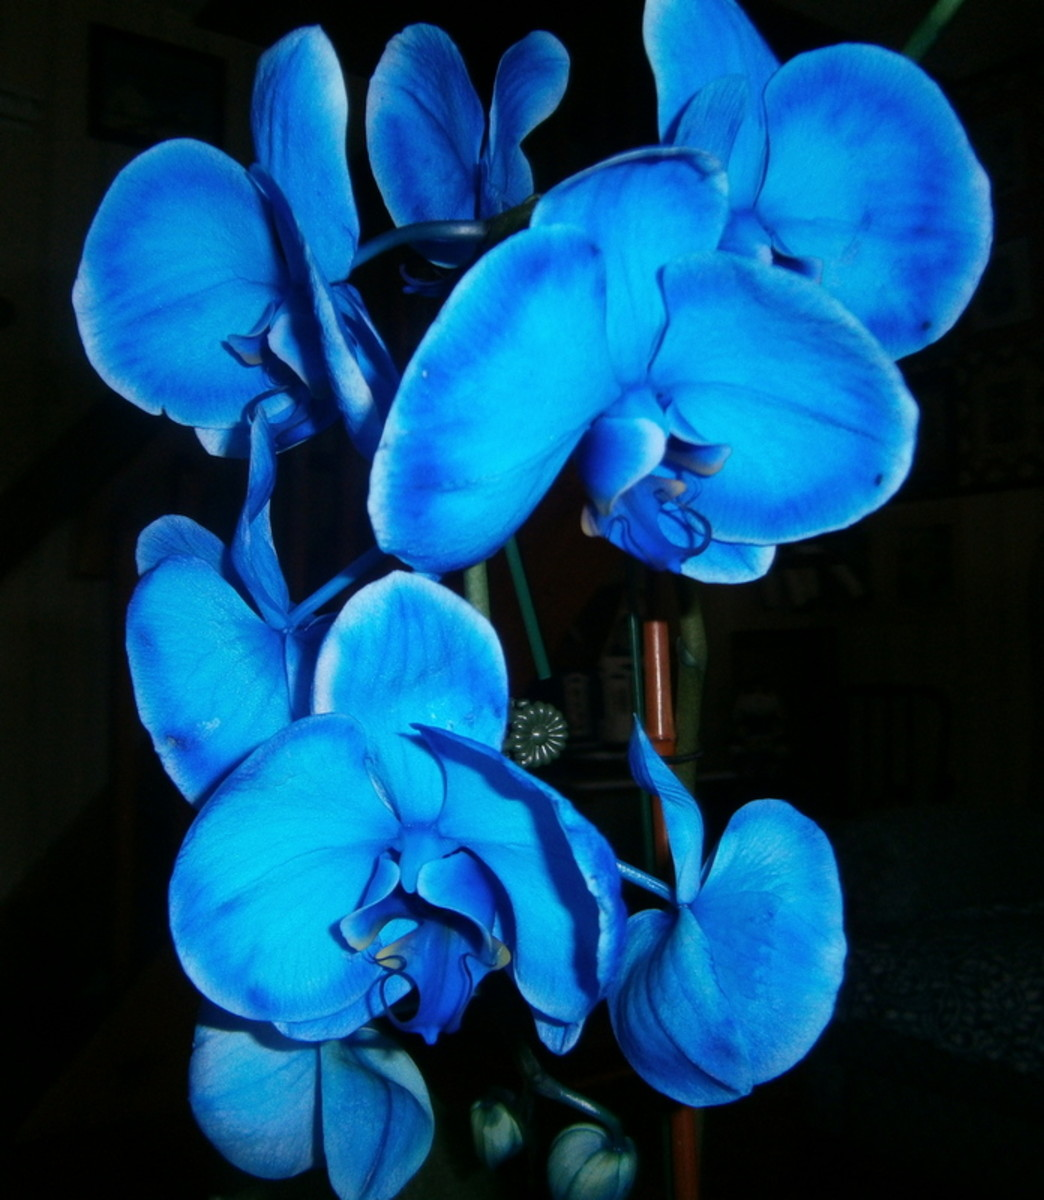 the-blue-orchid-also-known-as-the-blue-mystique-orchid-photos-and-tips-on-how-to-grow